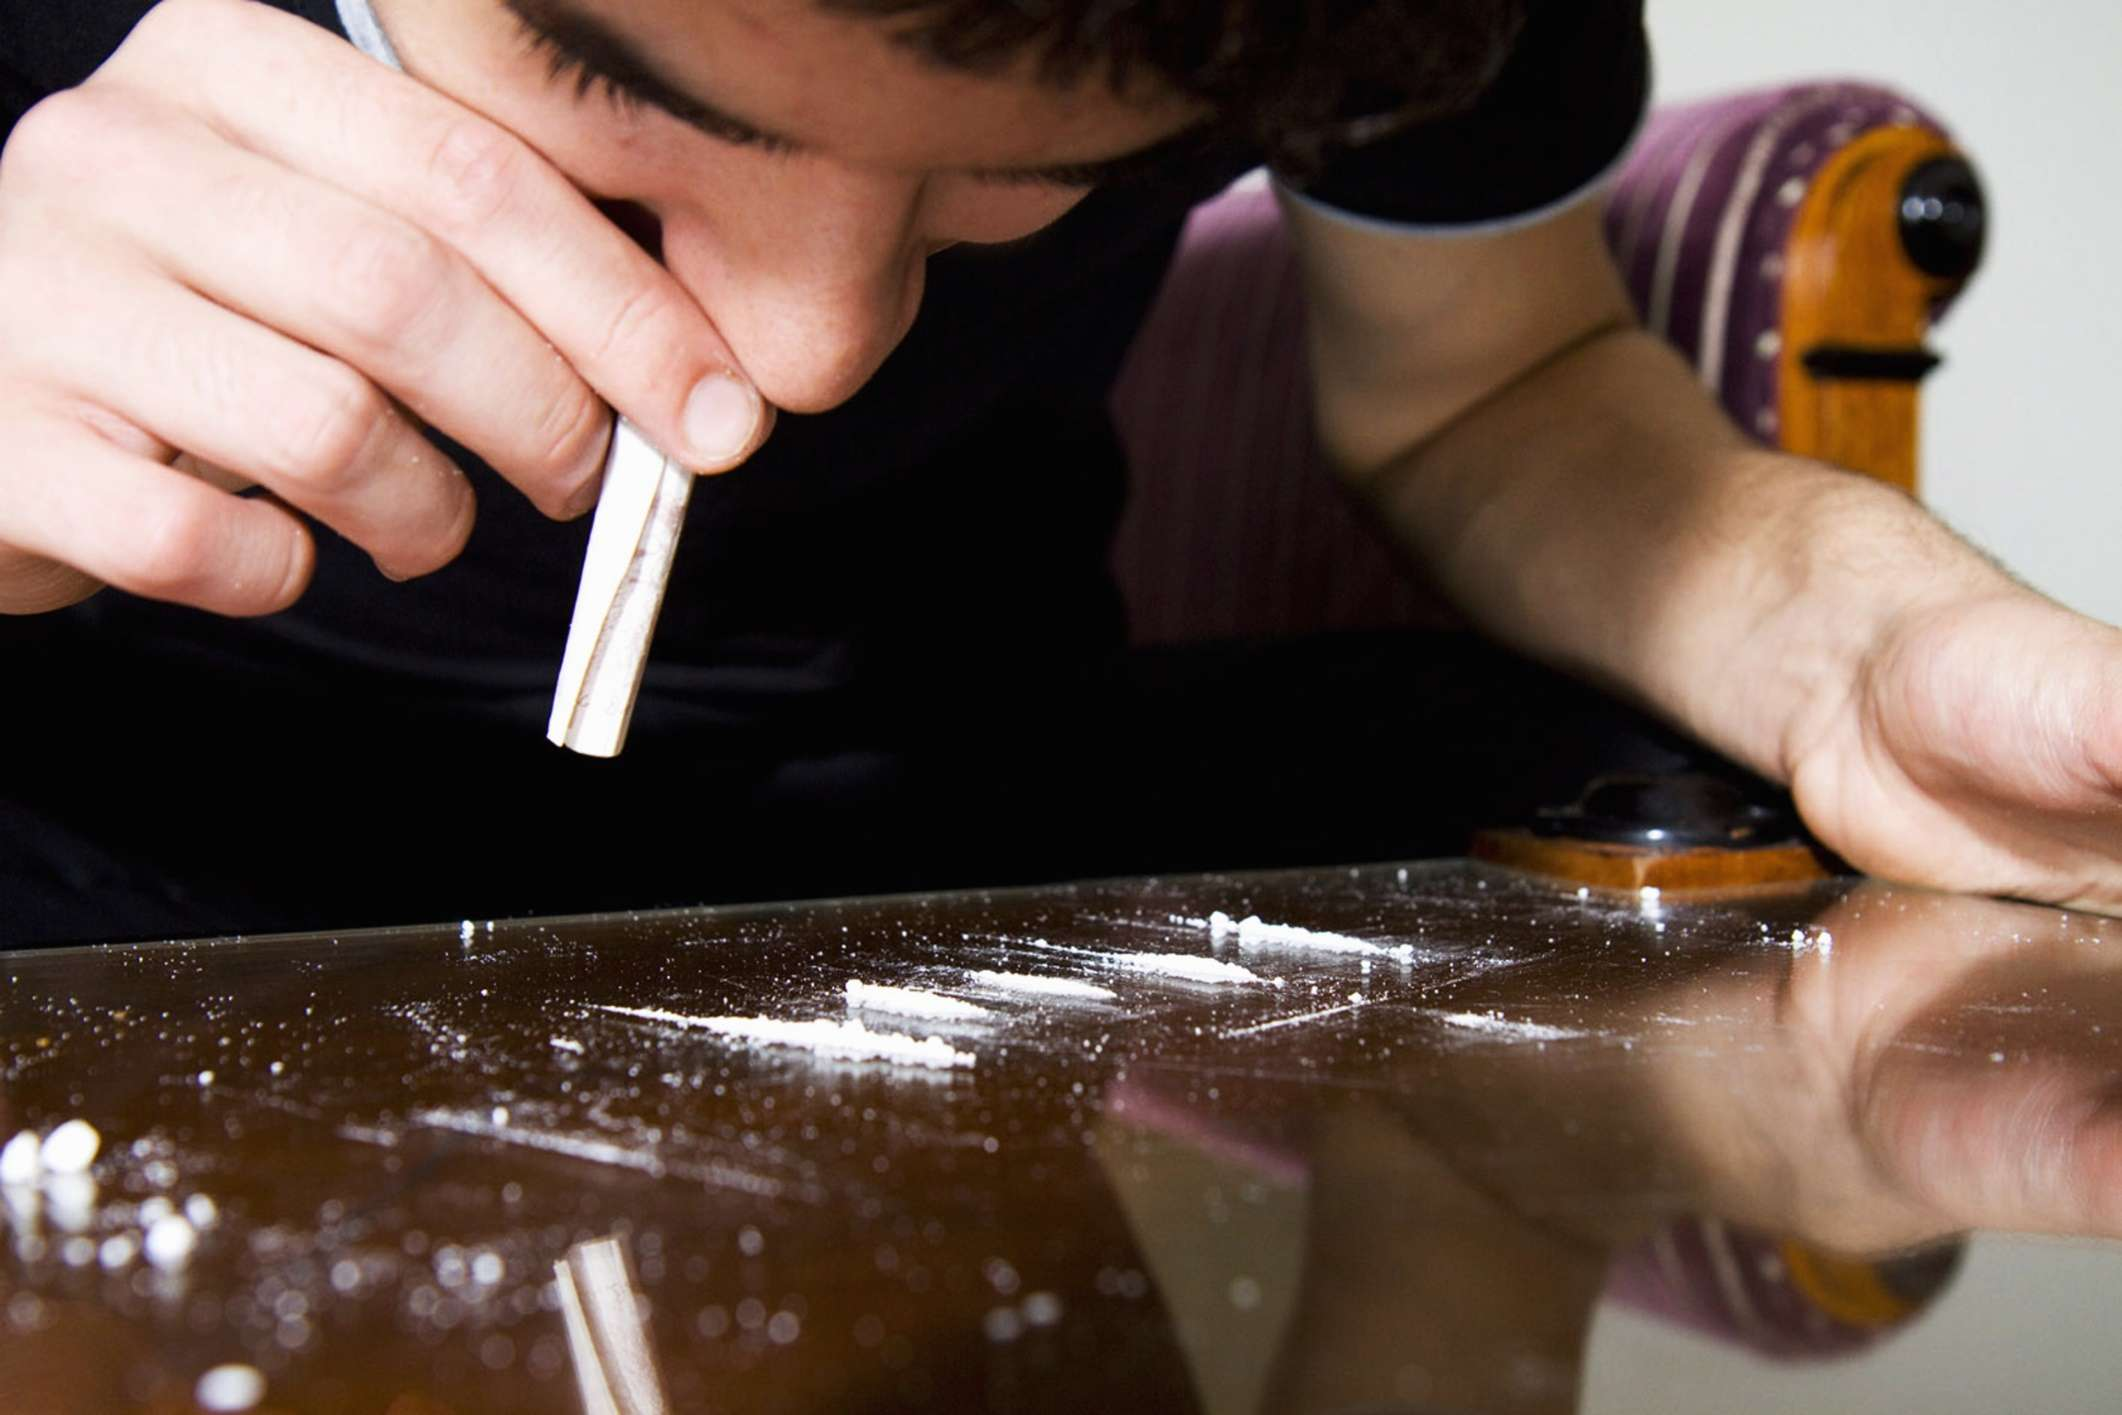 Harm Reduction Strategies When Using Cocaine